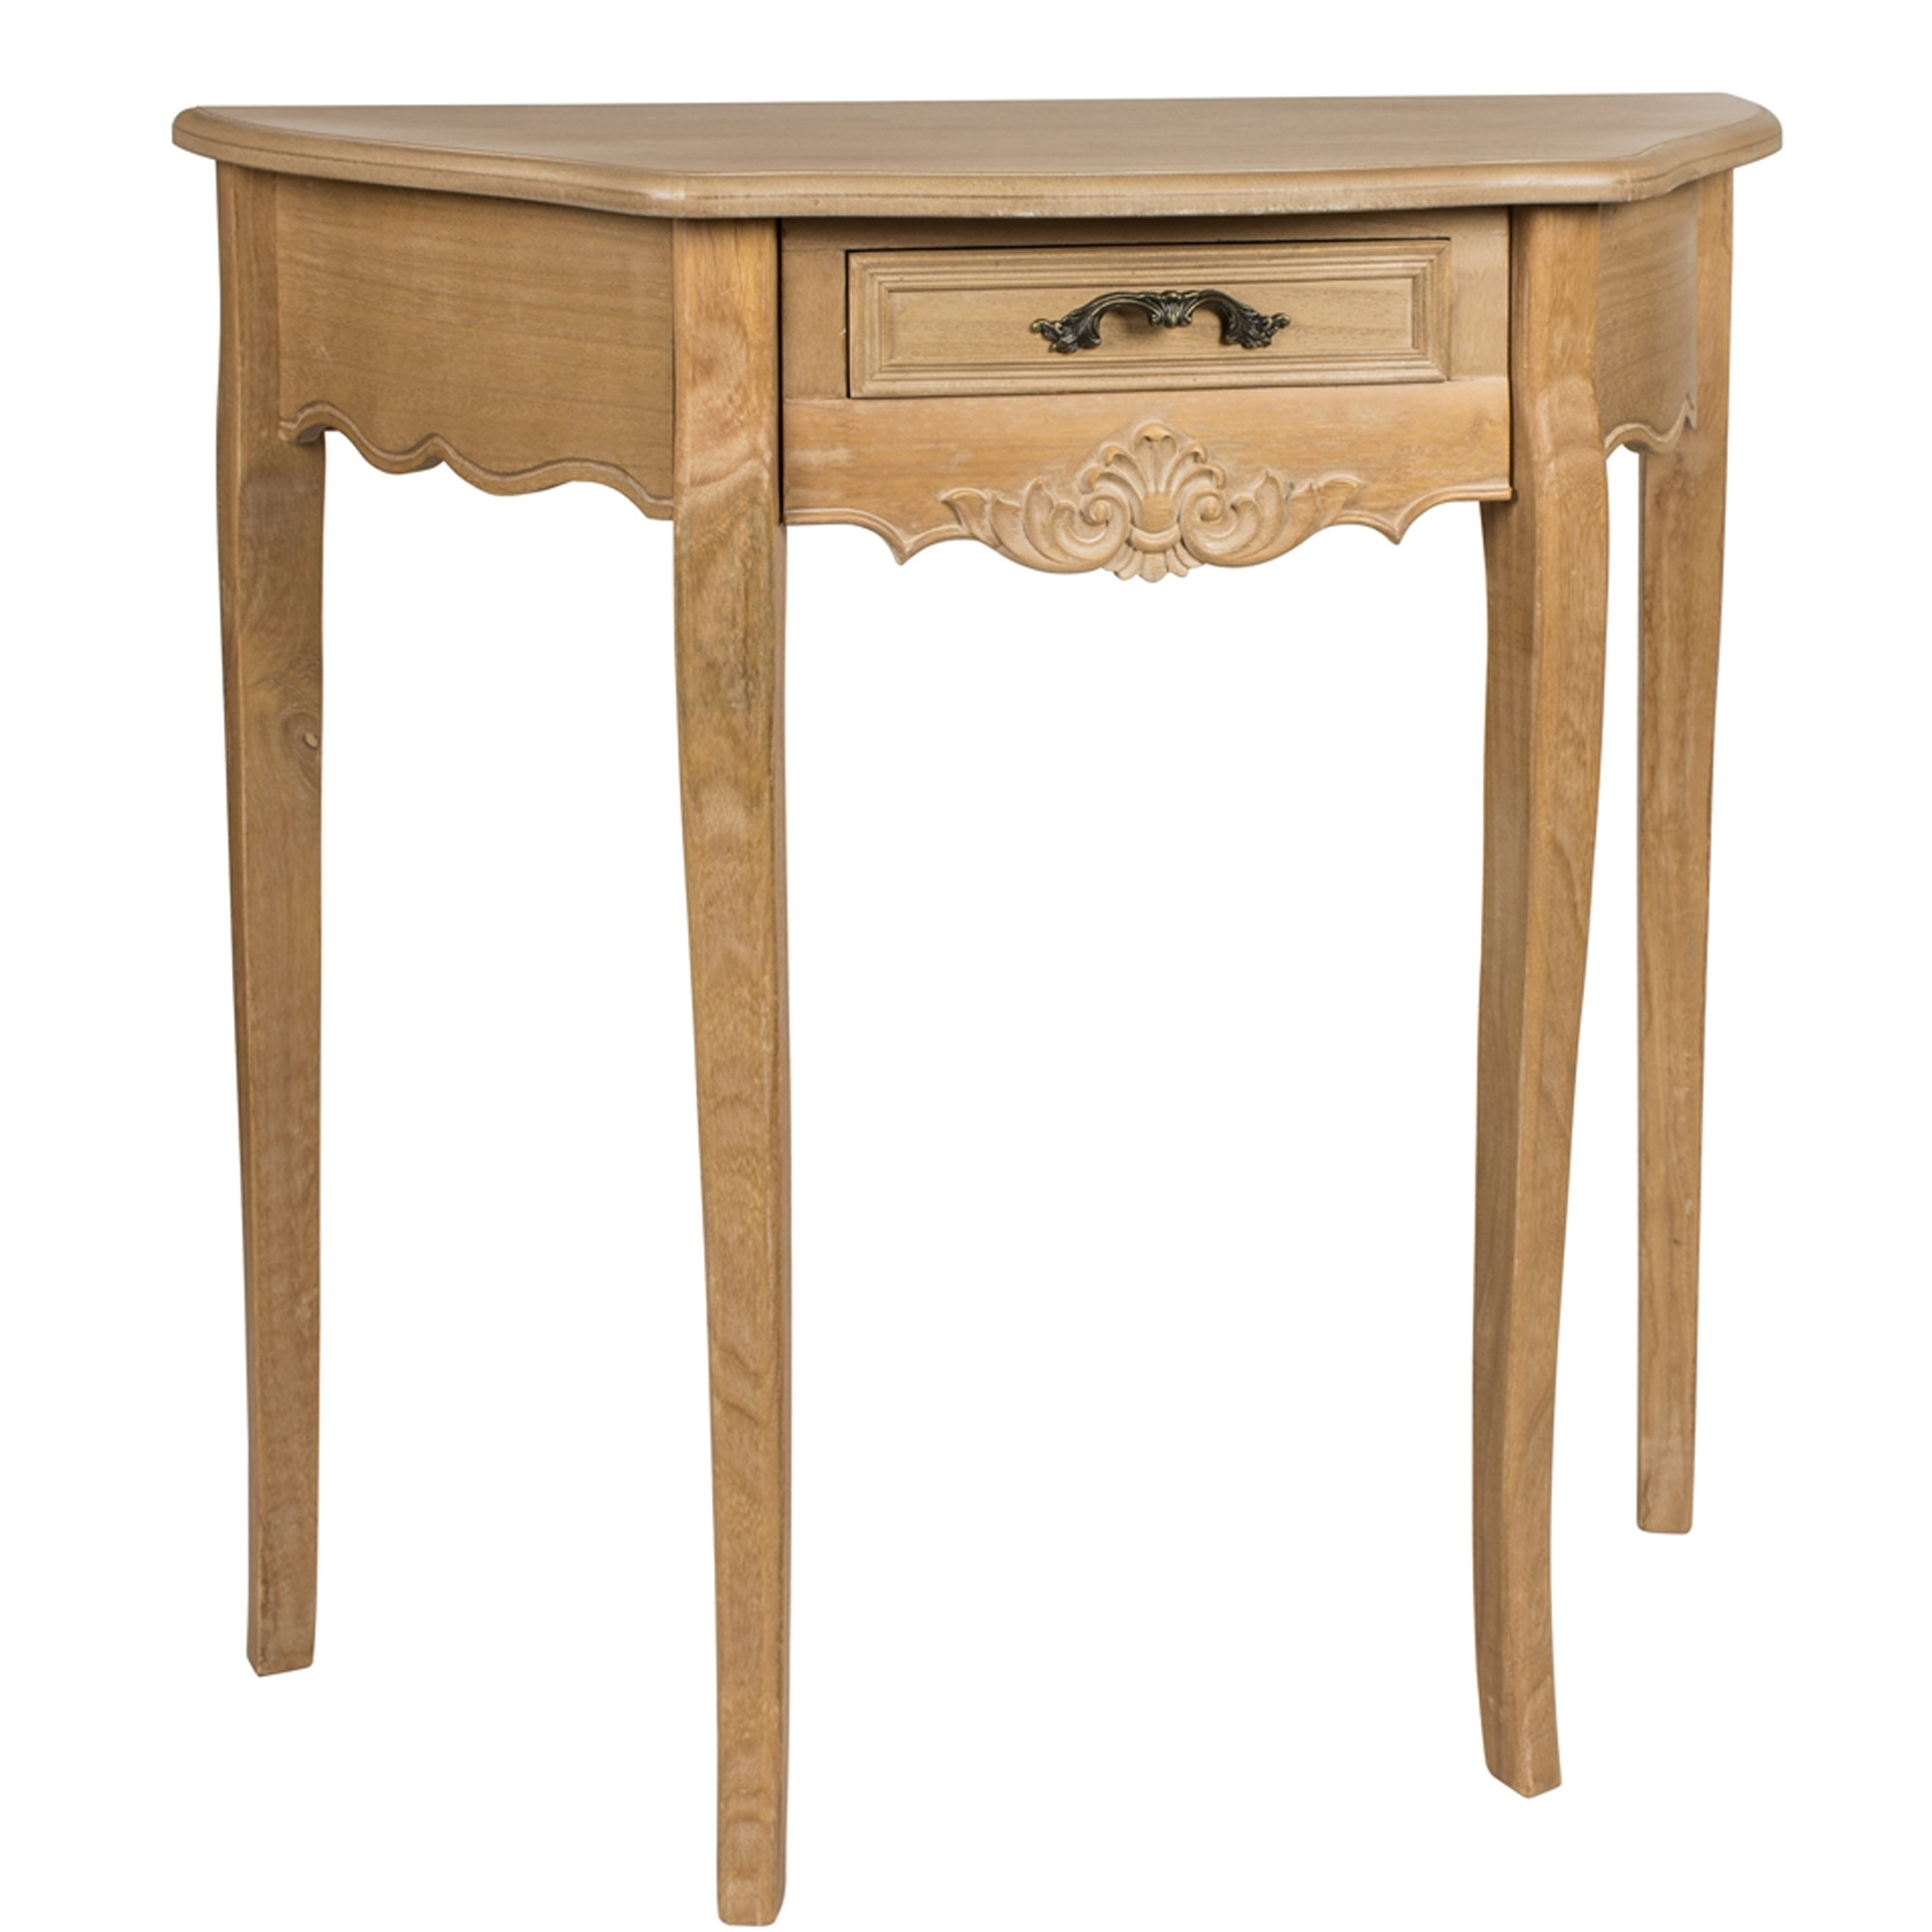 Strange Antique French Style 1 Drawer Console Table Andrewgaddart Wooden Chair Designs For Living Room Andrewgaddartcom